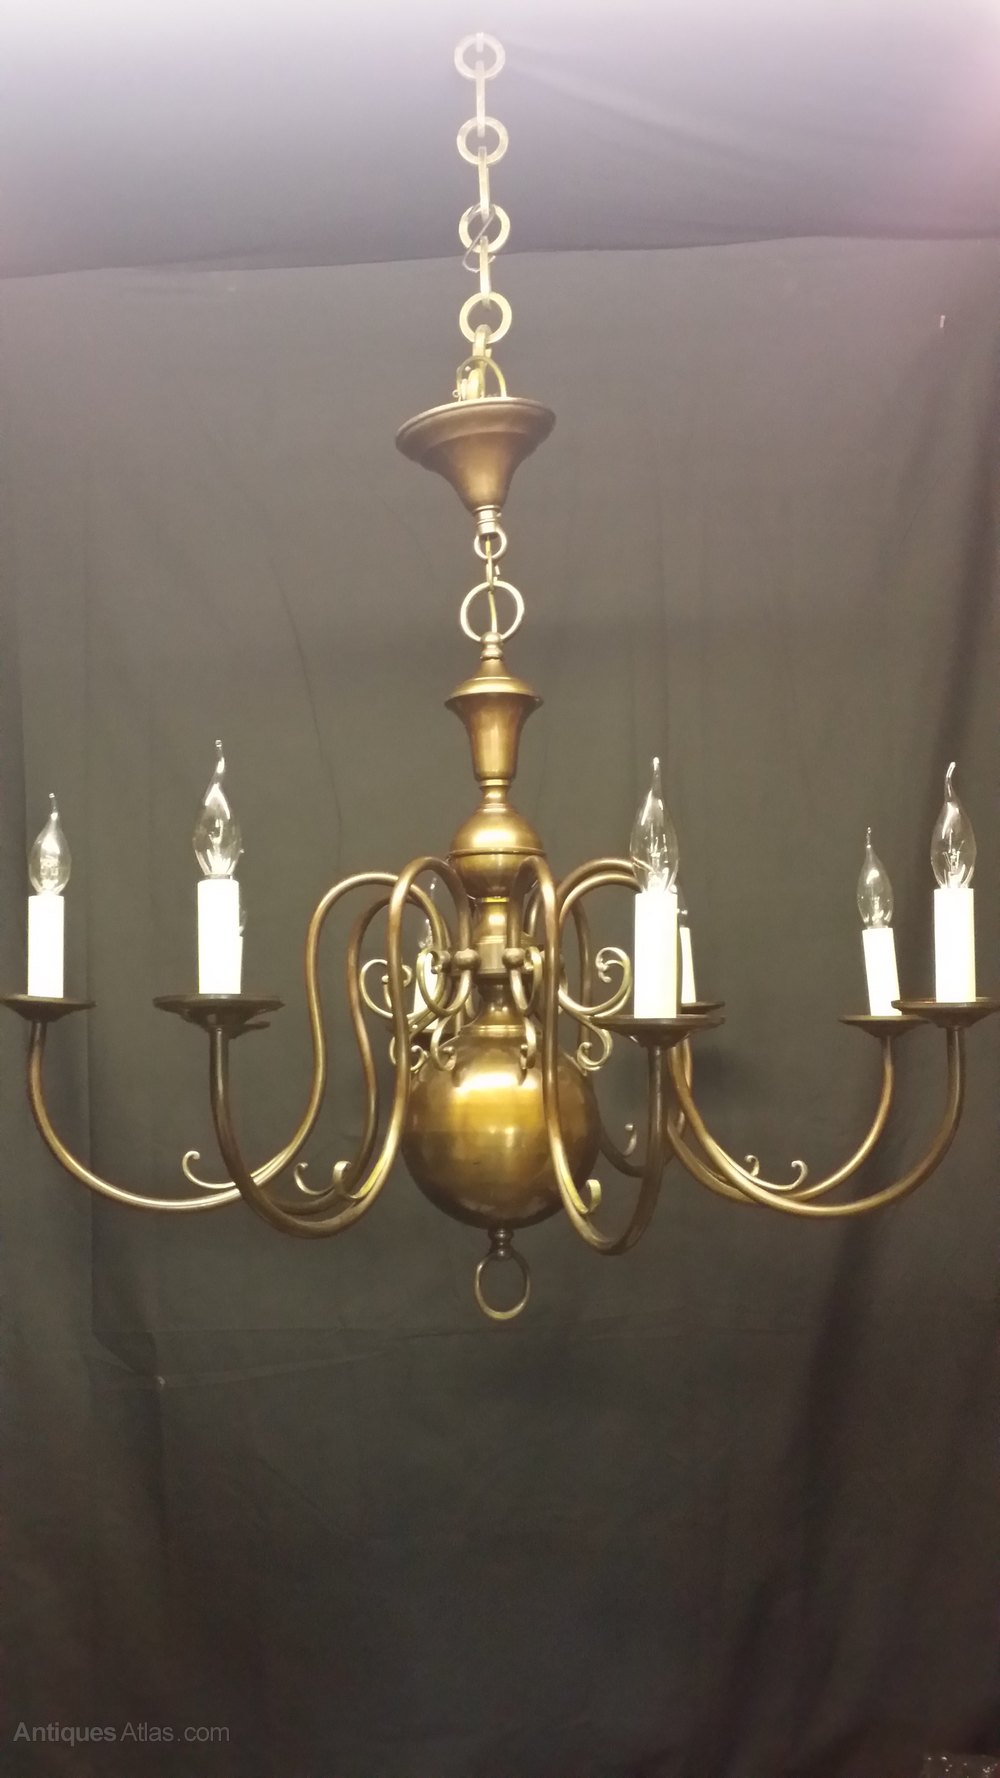 Brass flemish chandeliers flemish chandeliers this is a large impressive brass eight light flemish chandelier this chandelier has been rewired and has been fitted with new bulb sockets and brackets arubaitofo Images